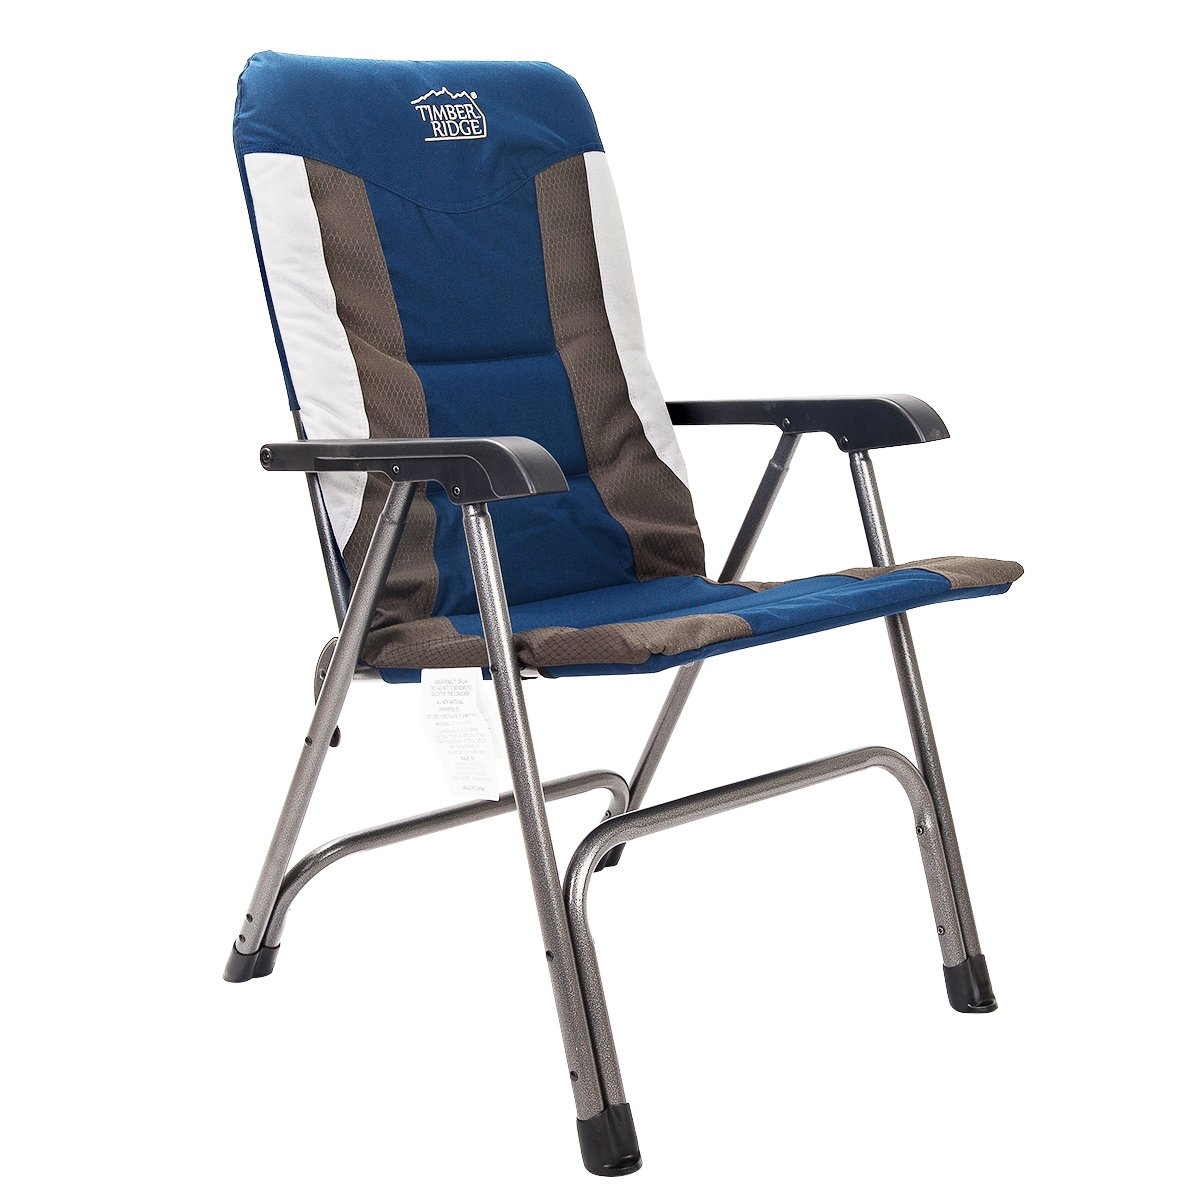 4. Timber Ridge Camping Chair Portable High Back